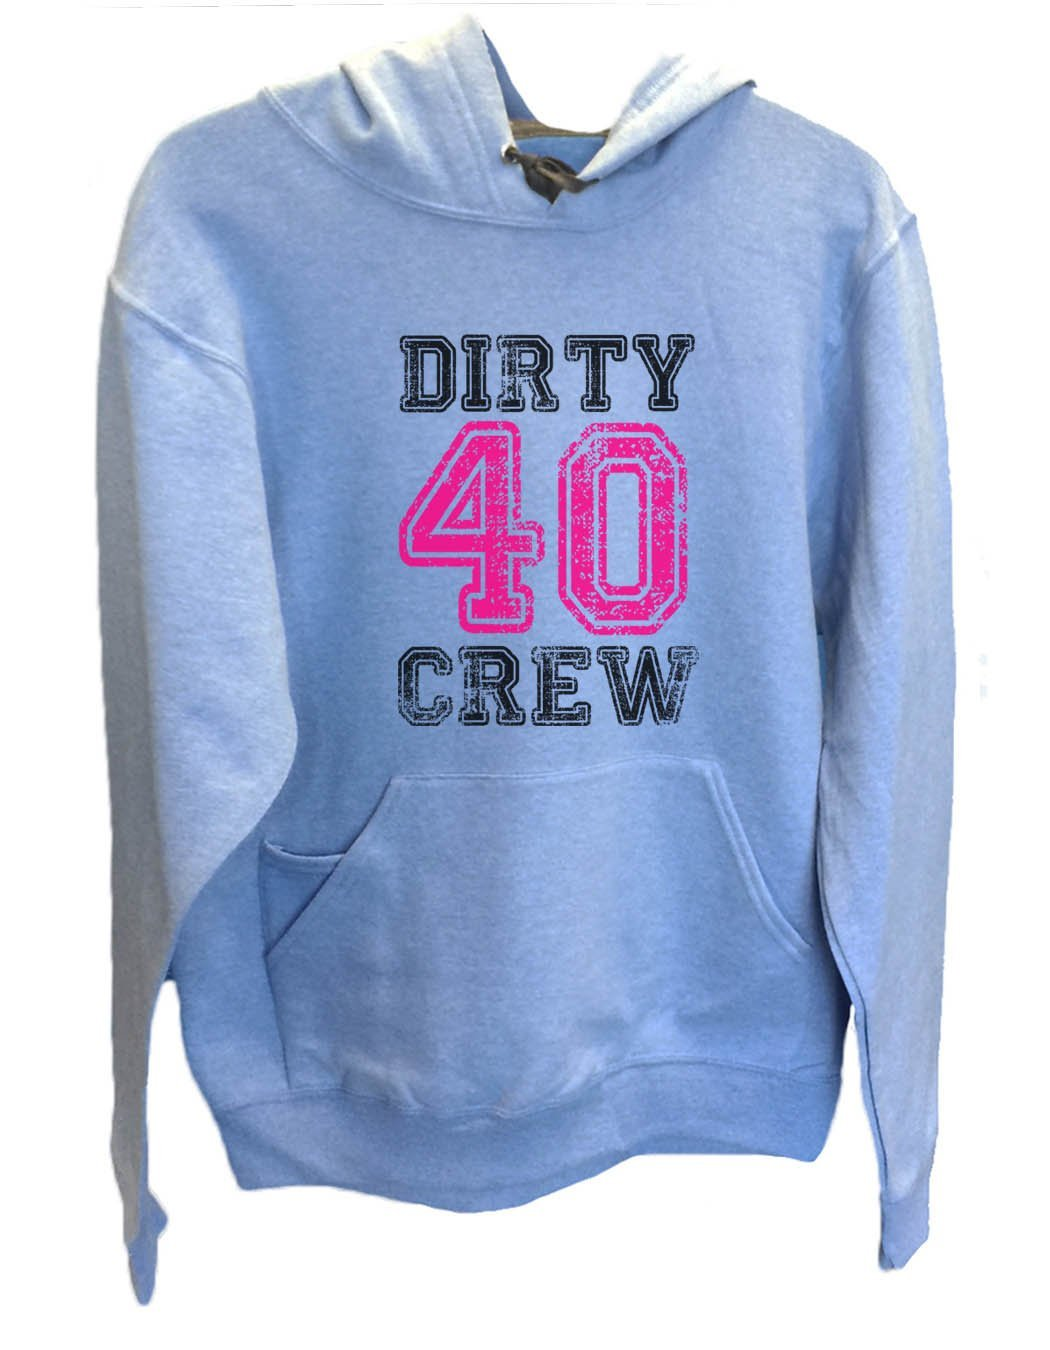 UNISEX HOODIE - Dirty Forty Crew - FUNNY MENS AND WOMENS HOODED SWEATSHIRTS - 2146 Funny Shirt Small / North Carolina Blue